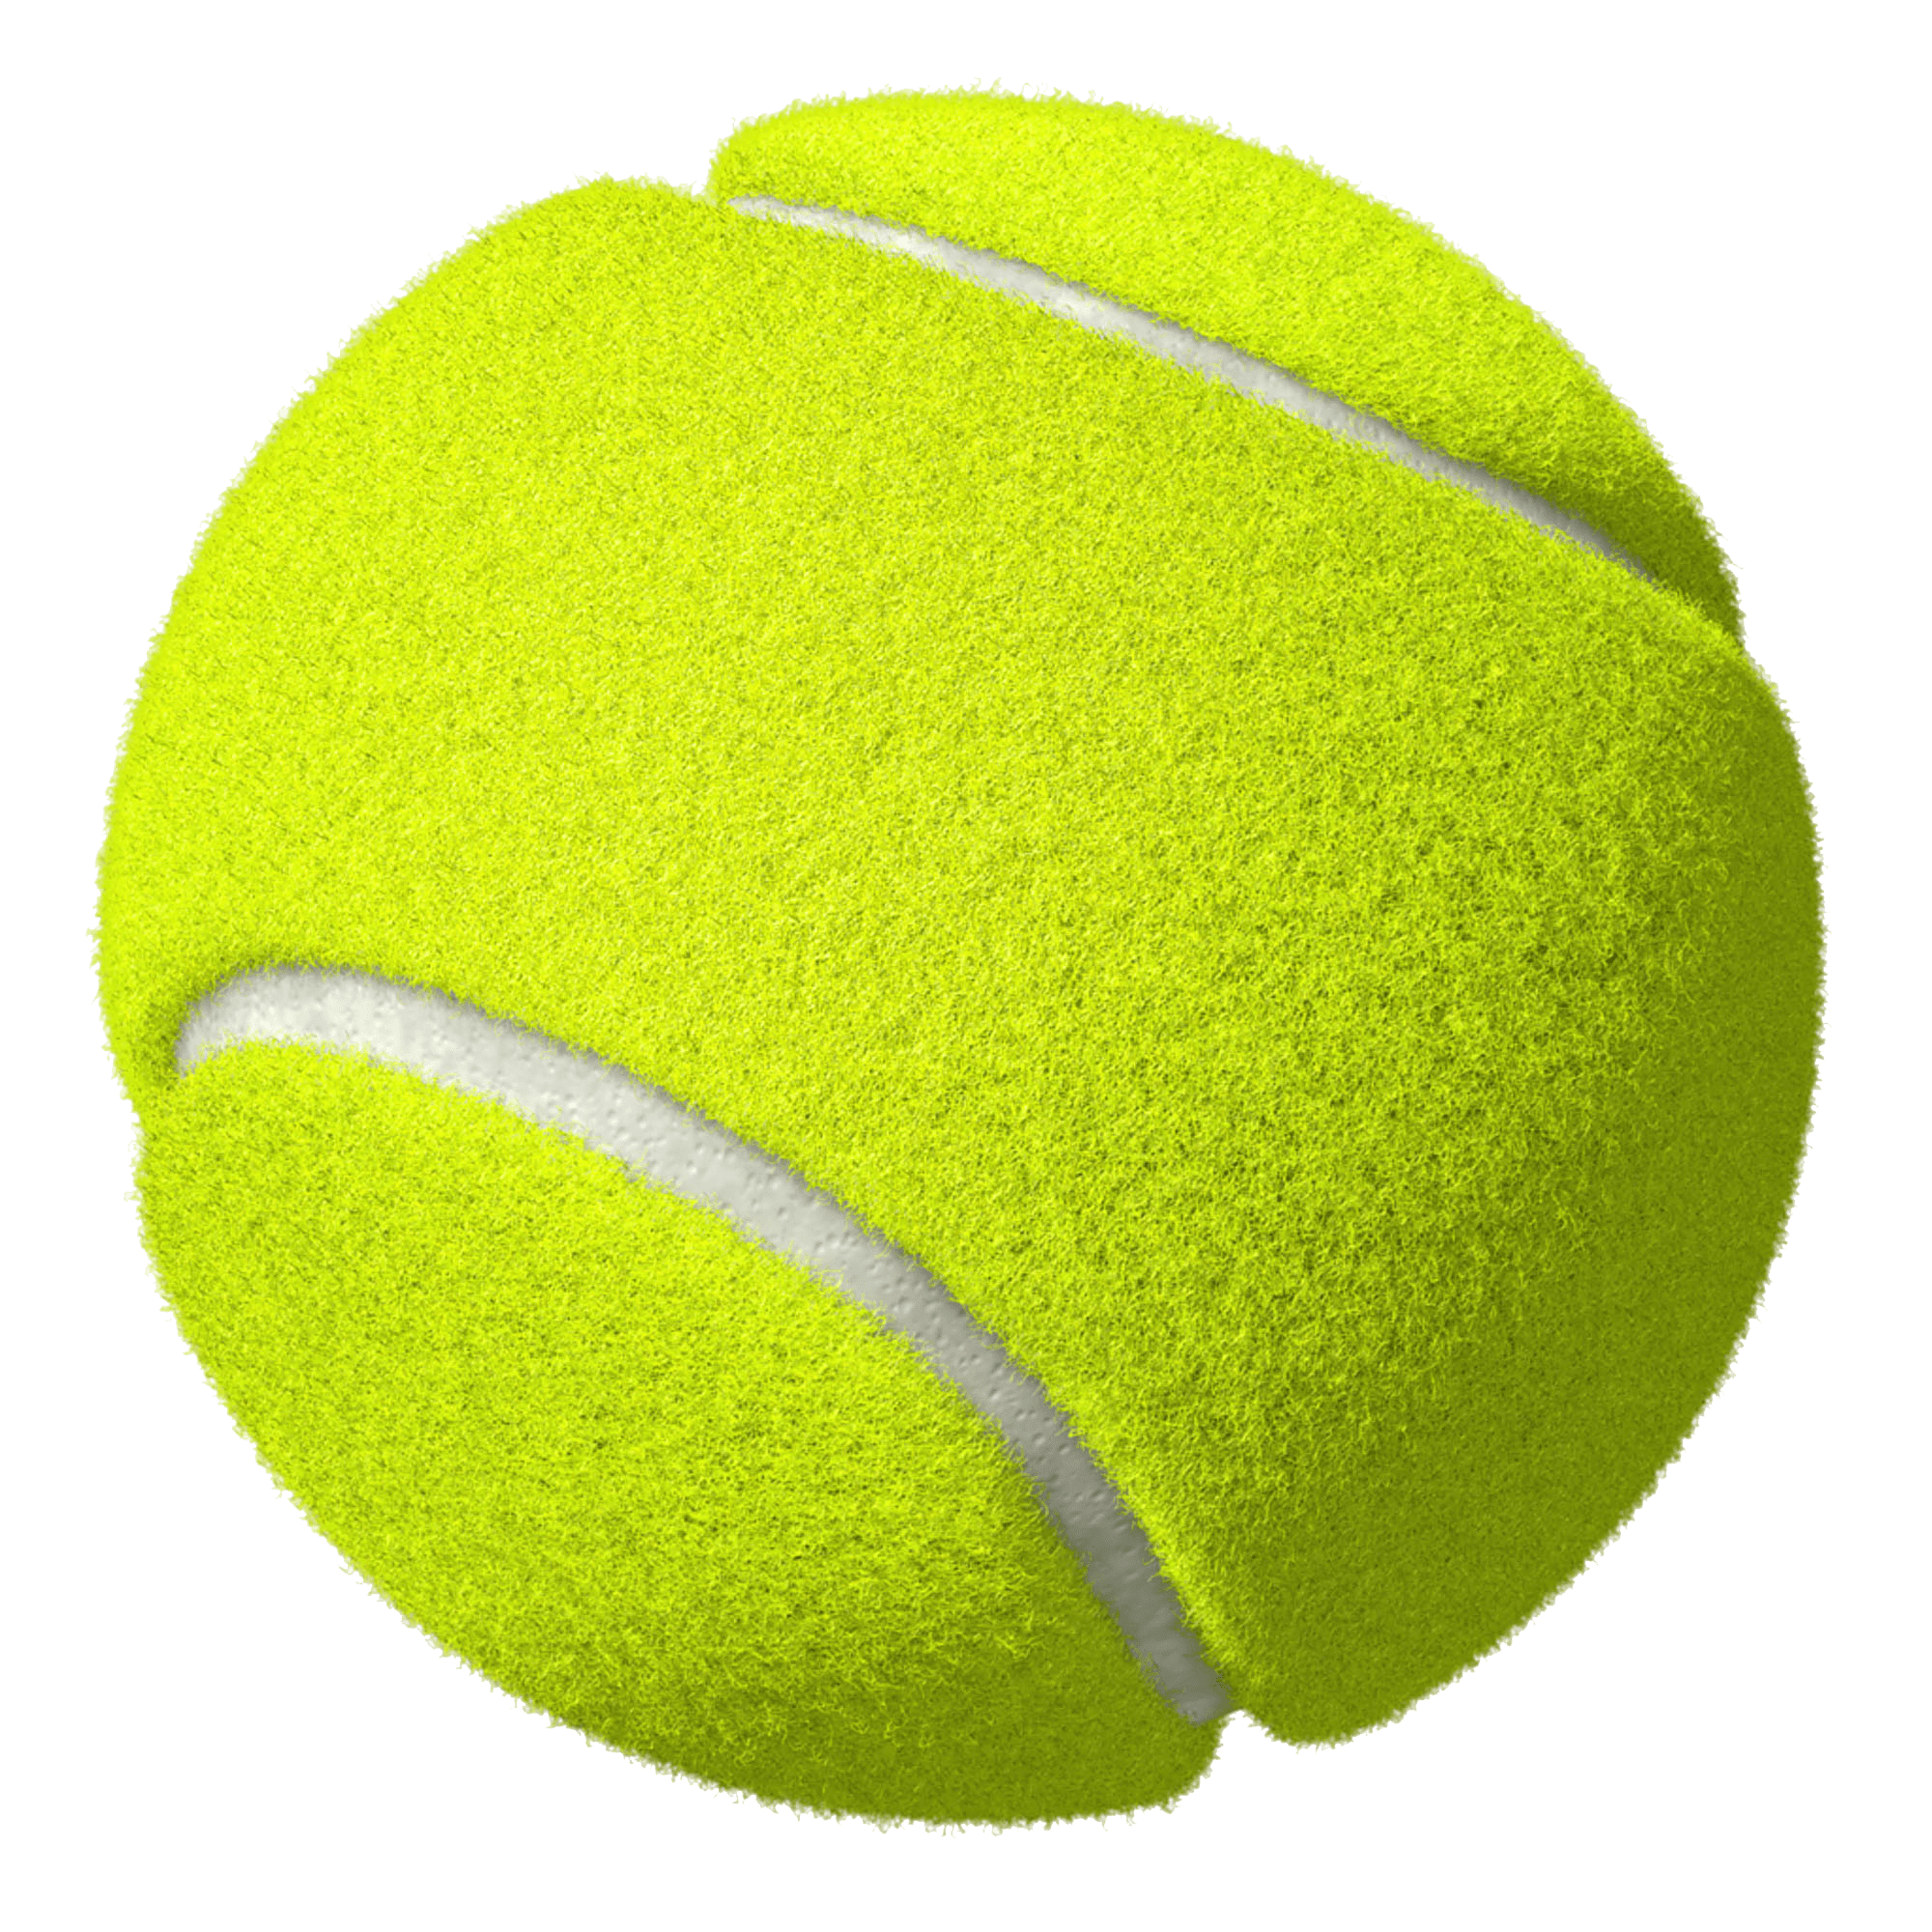 Ball Tennis Transparent Png Stickpng